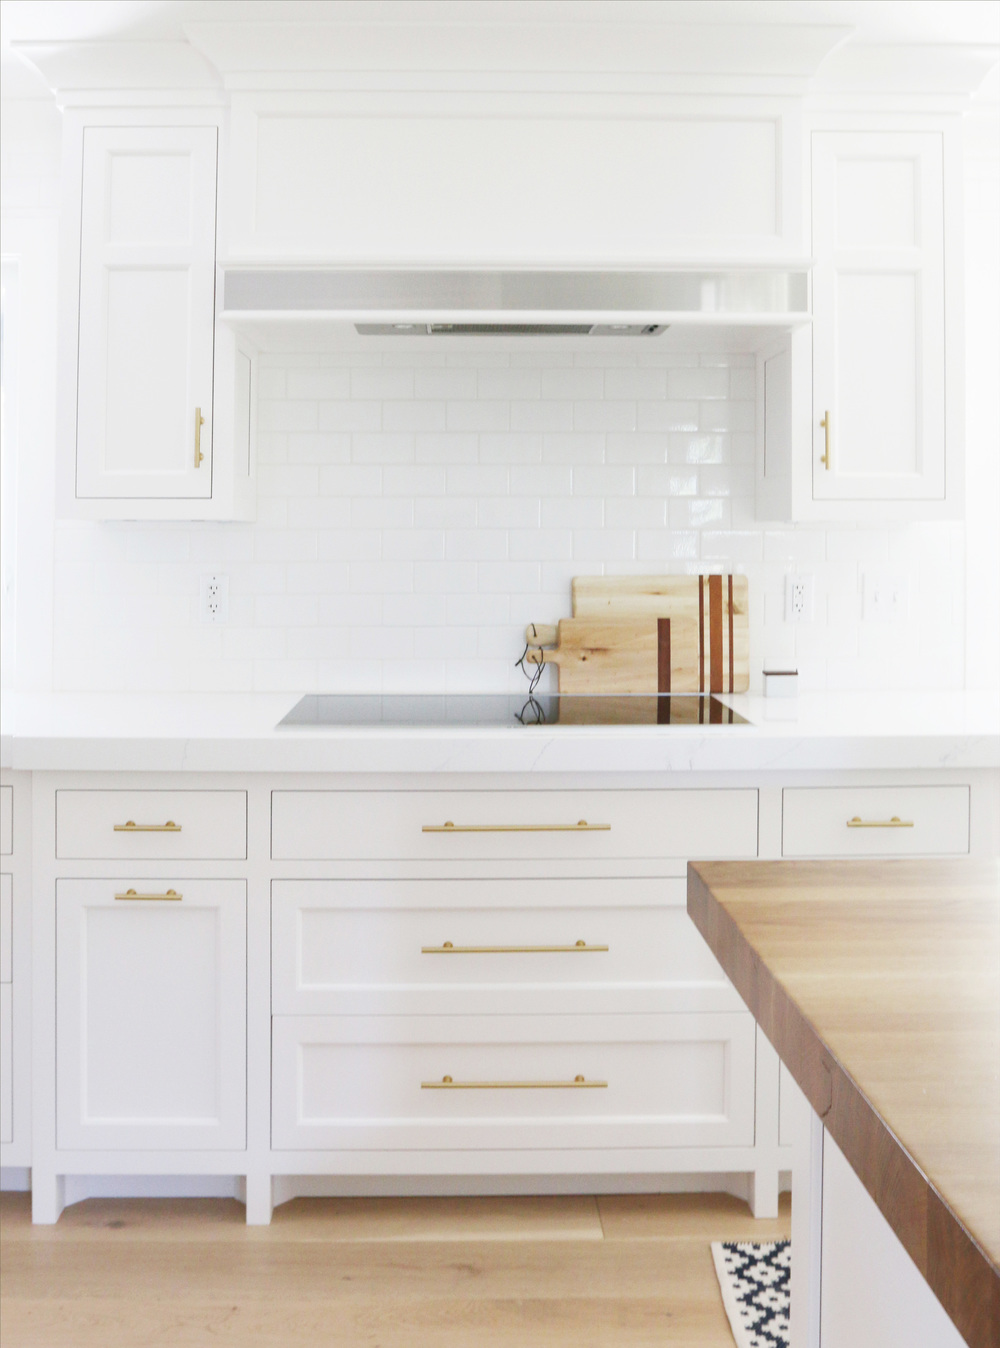 Cabinet+details+and+brass+hardware+--+Studio+McGee